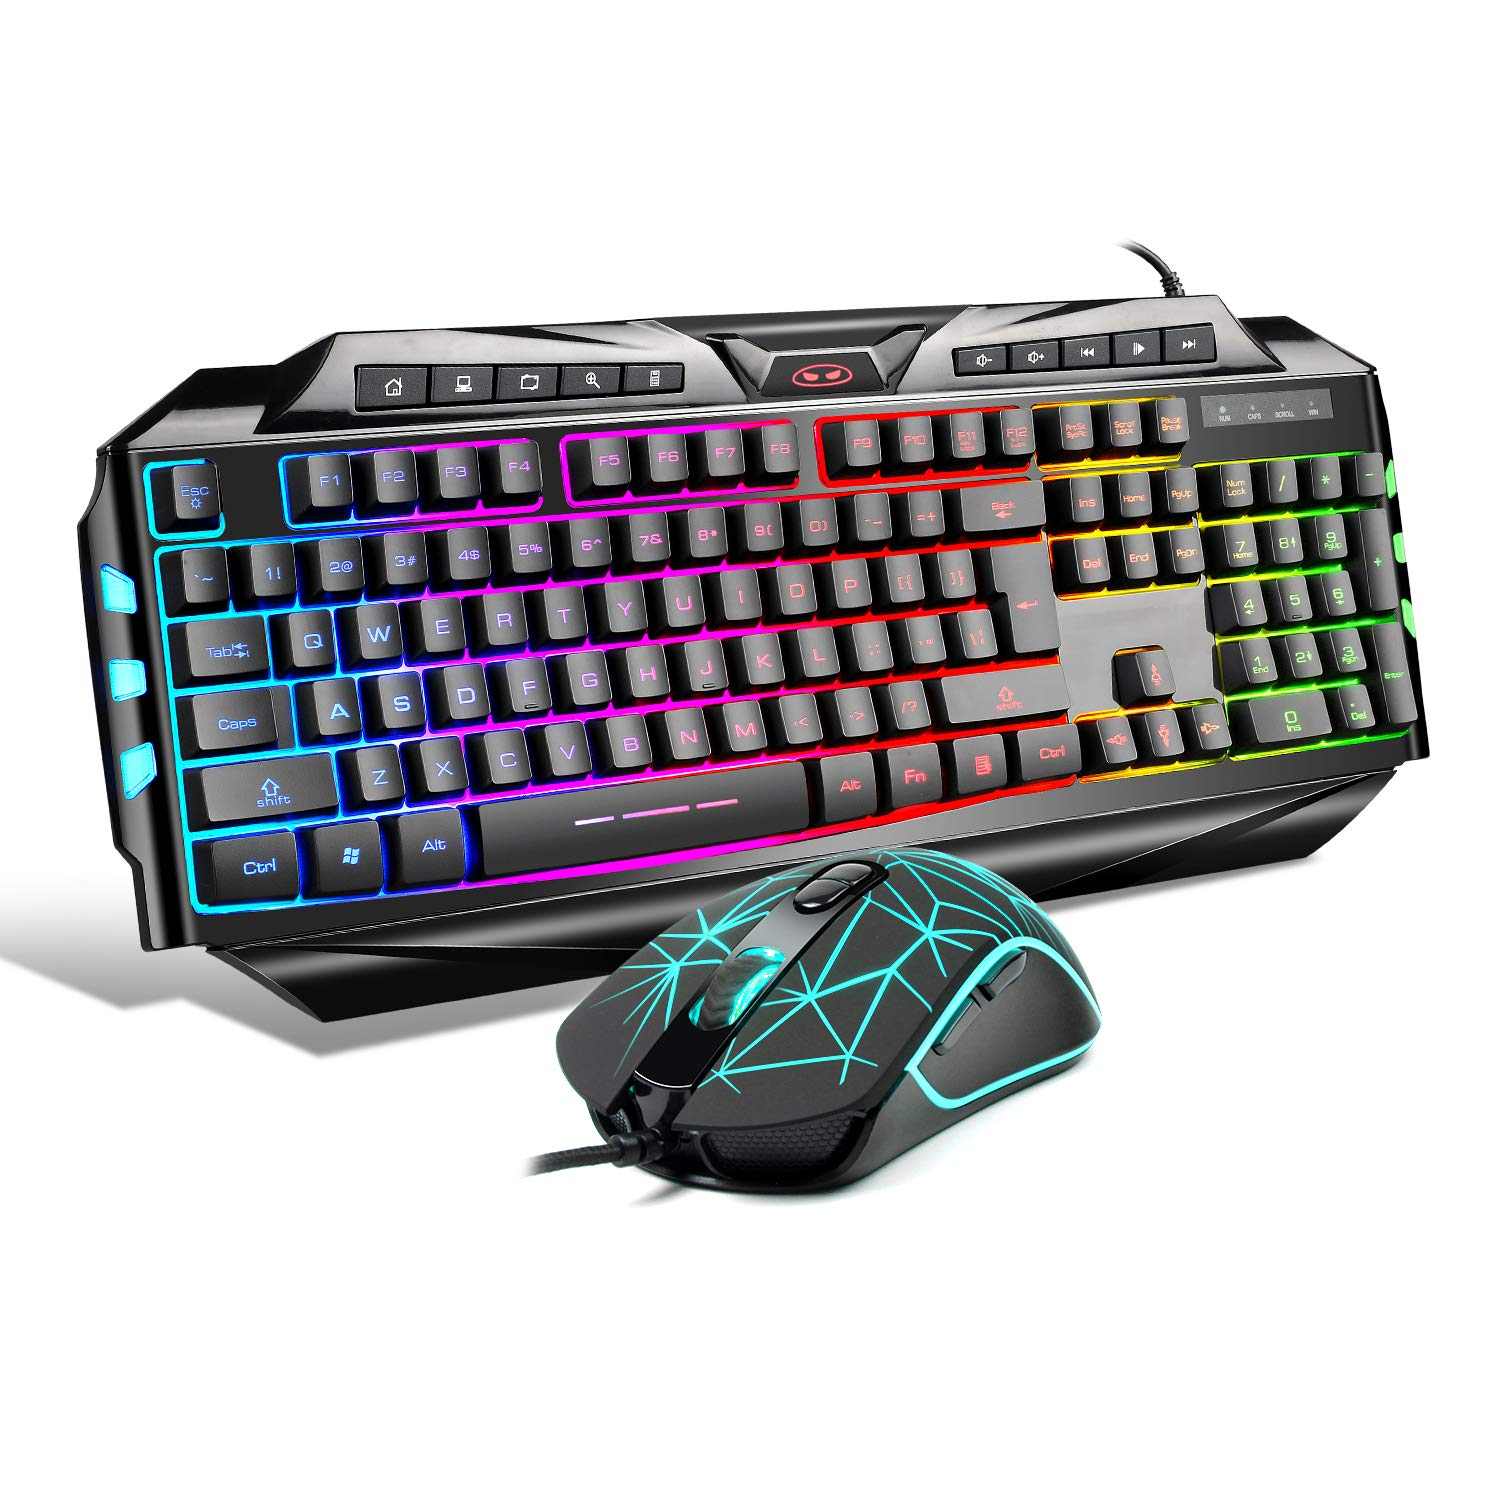 Gaming Keyboard and Mouse Combo,MageGee GK710 Wired Backlight Keyboard and Gaming Mouse Combo,PC Keyboard and Adjustable DPI Mouse for PC Laptop MAC